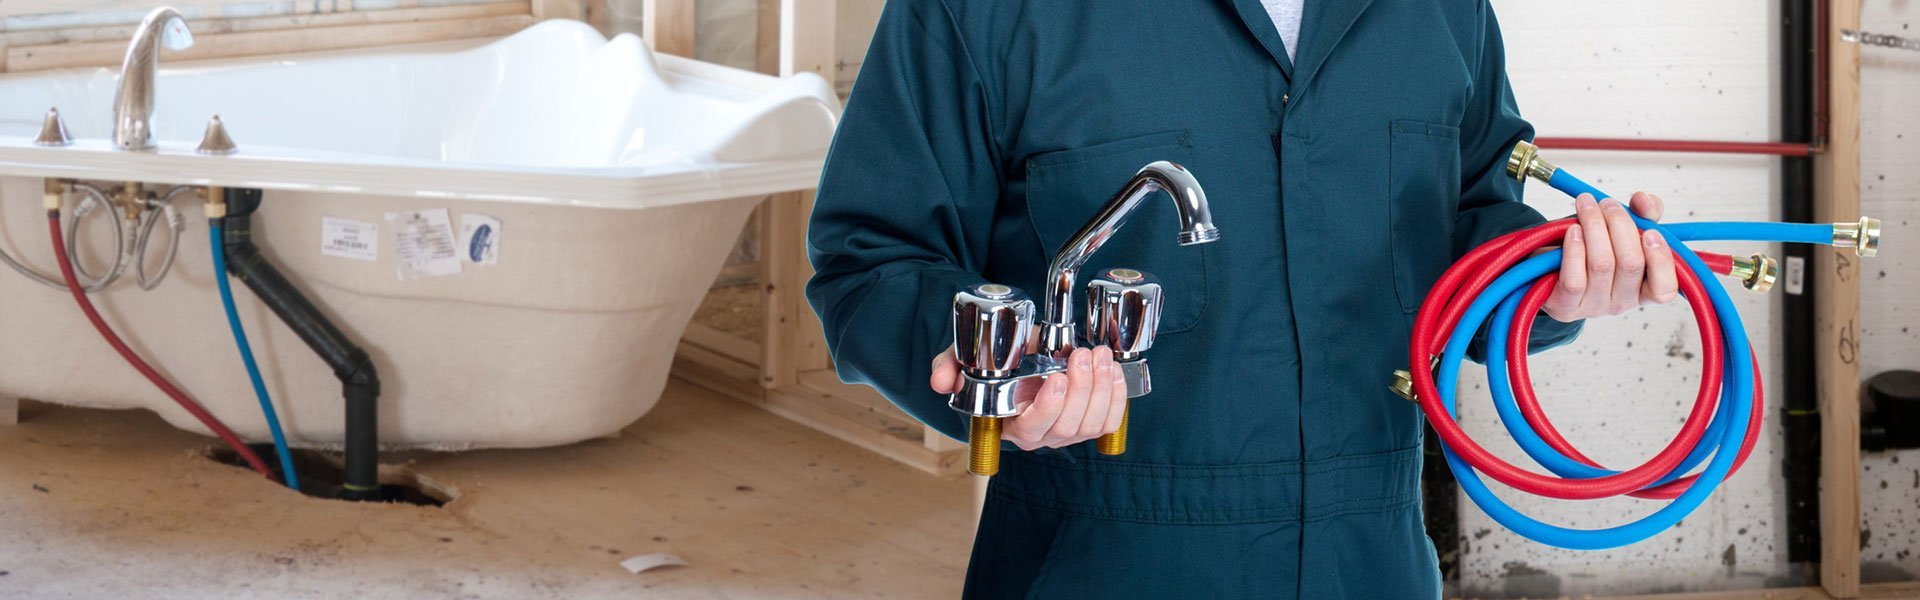 Efficient emergency plumbers in Luton, Hitchin & beyond.